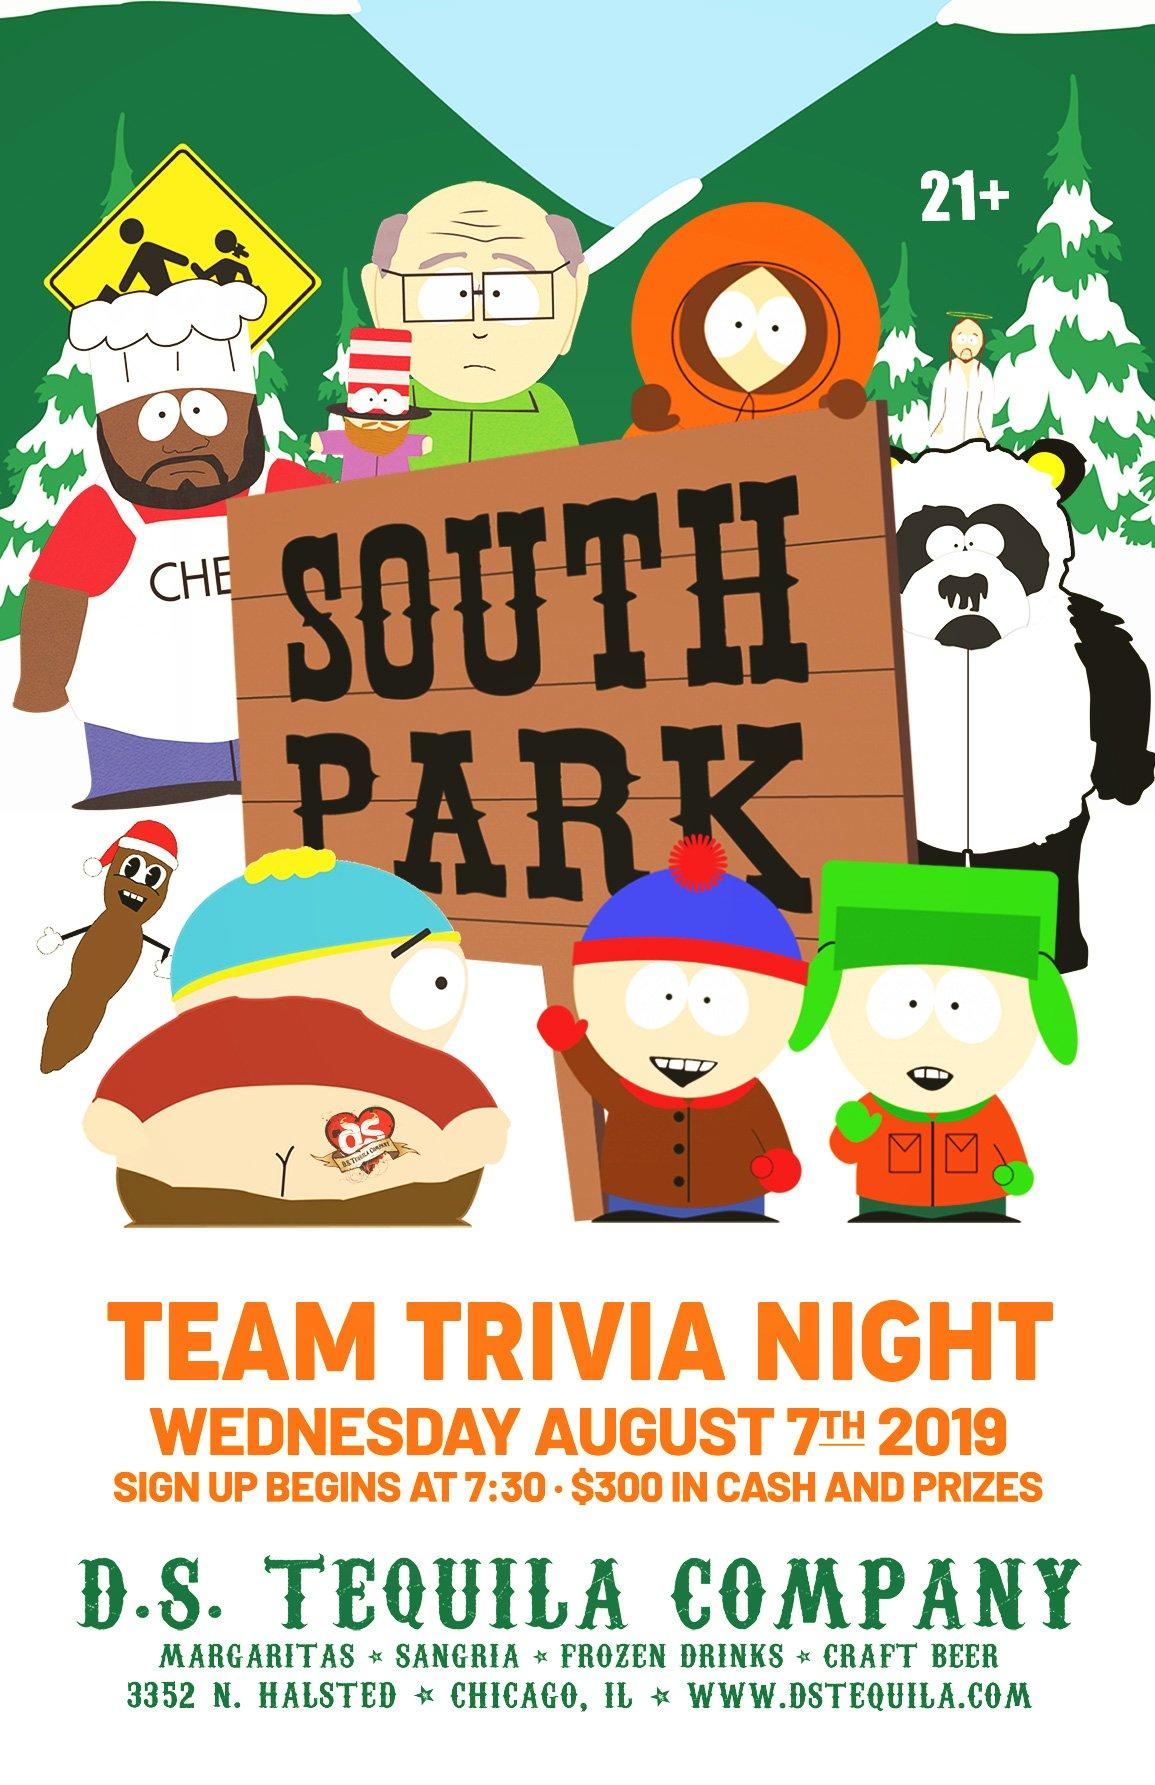 ds-tequila-south-park-trivia-2019